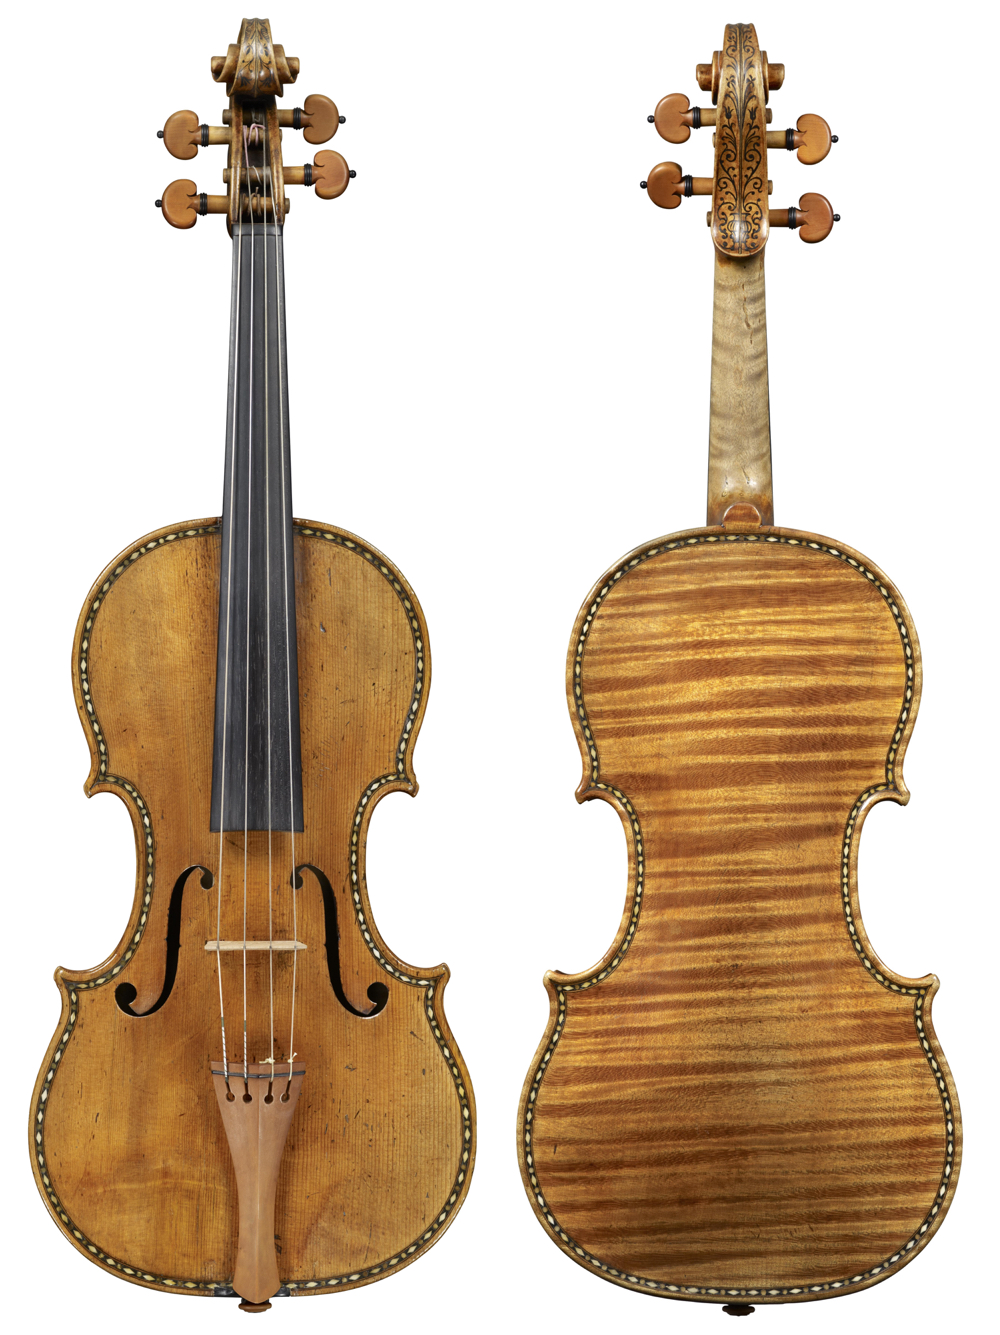 The astonishing 'Sunrise' Stradivari of 1677. Photos: Jan Röhrmann, Antonius Stradiuarius Vol I–IV